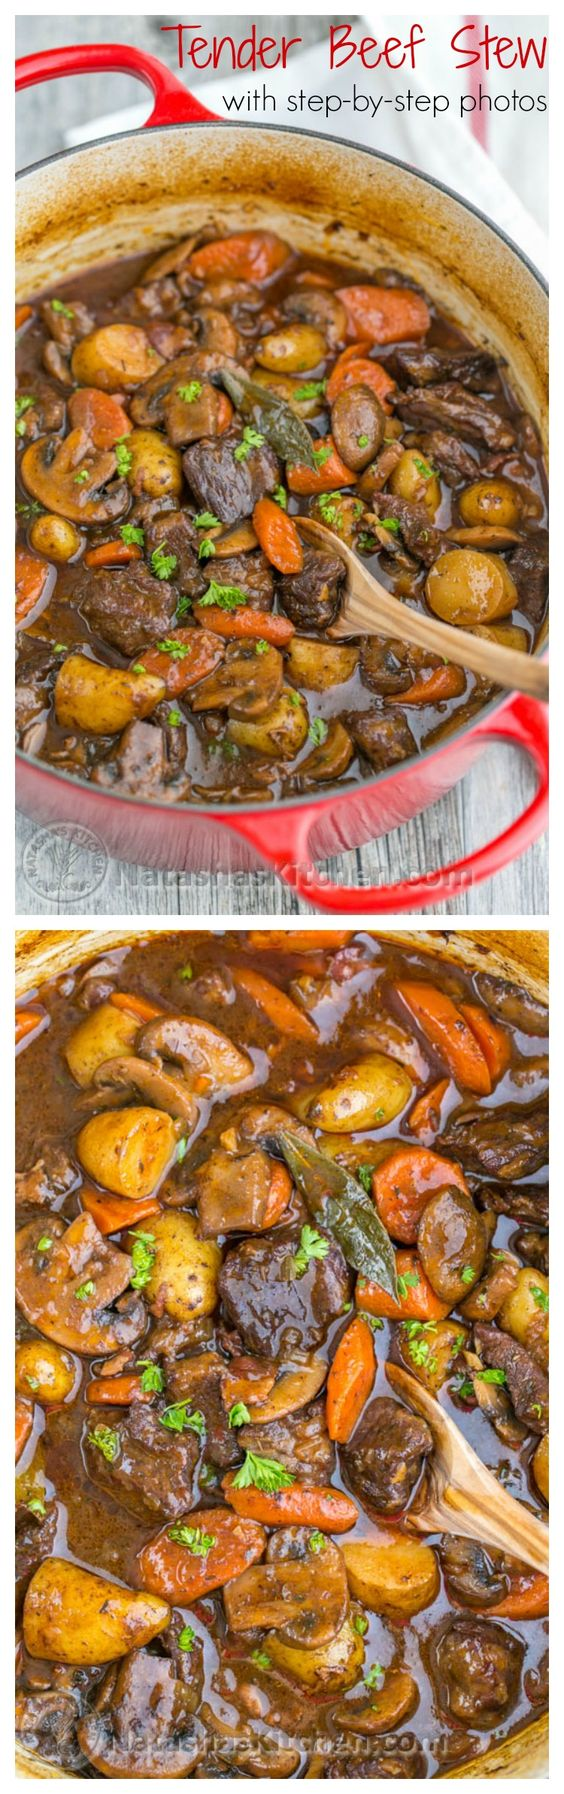 Beef Stew. Ok, yum! This beef recipe is so tender and just melts in your mouth - so good! Make this for dinner and you'll get rave reviews.